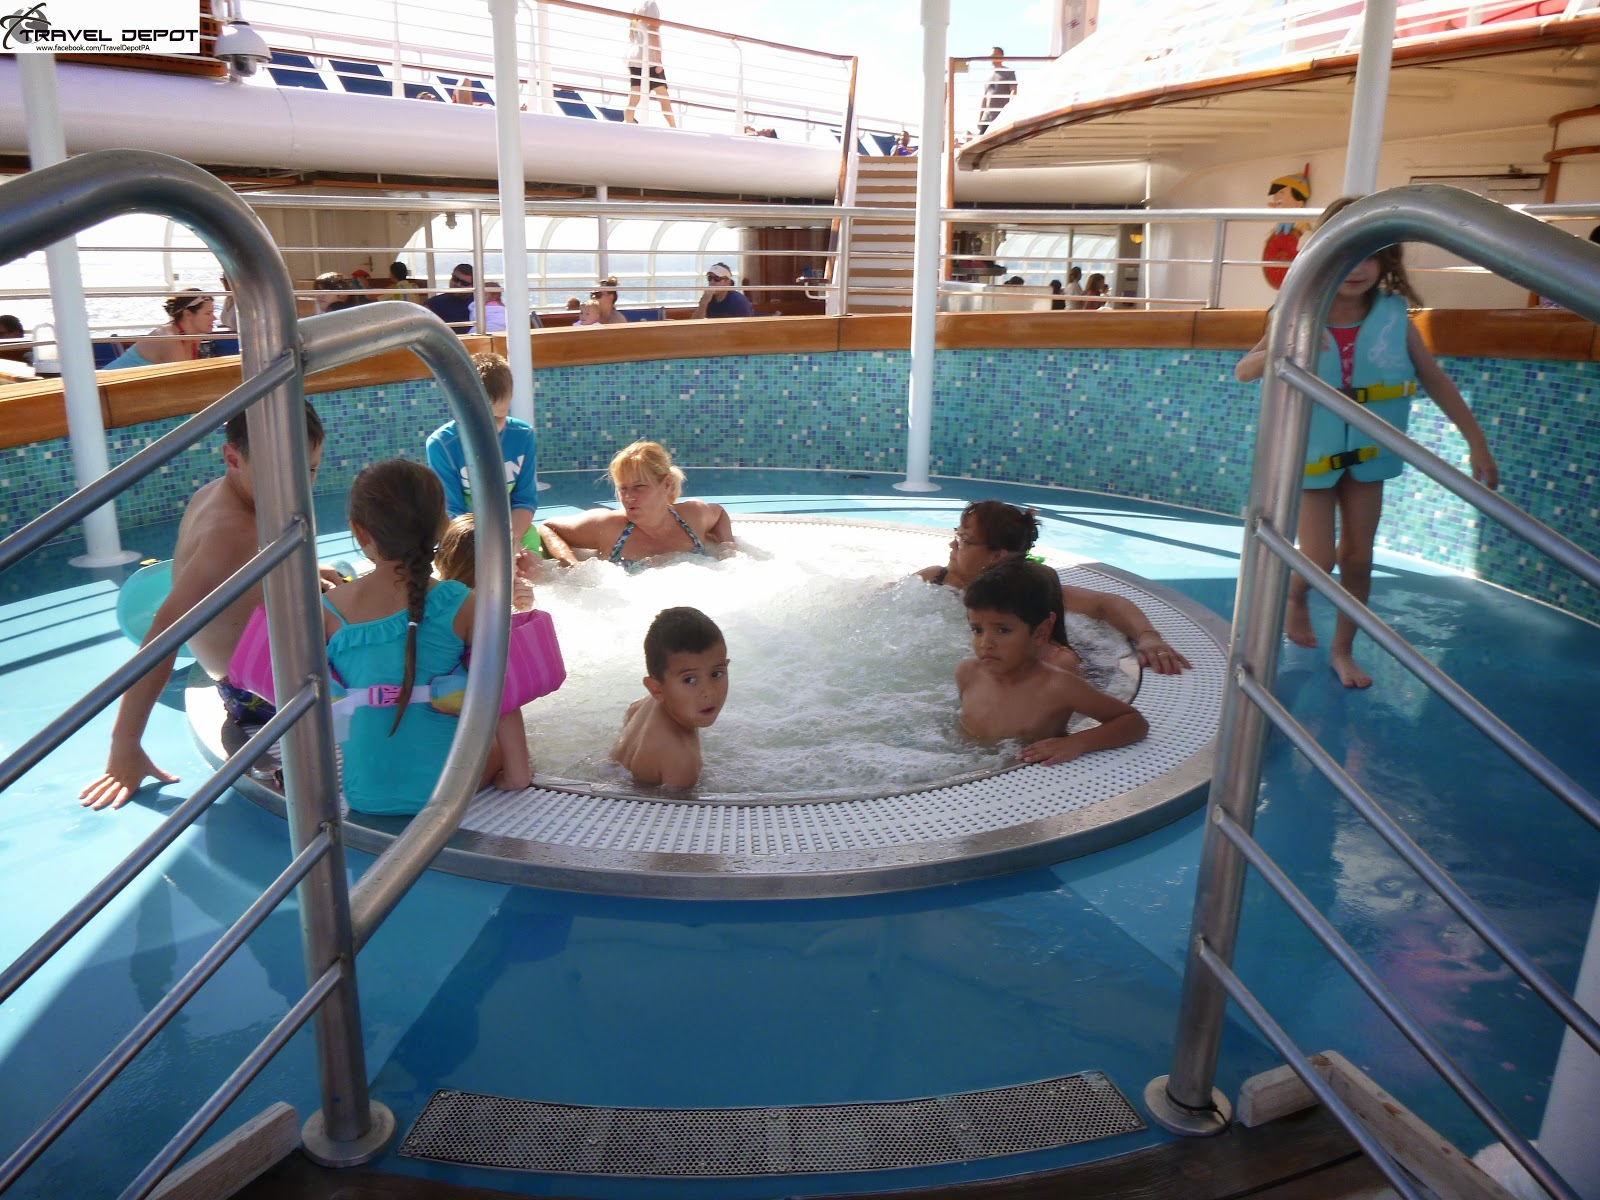 Pool areas aboard the disney magic cruise ship travel depot - Least crowded swimming pool singapore ...